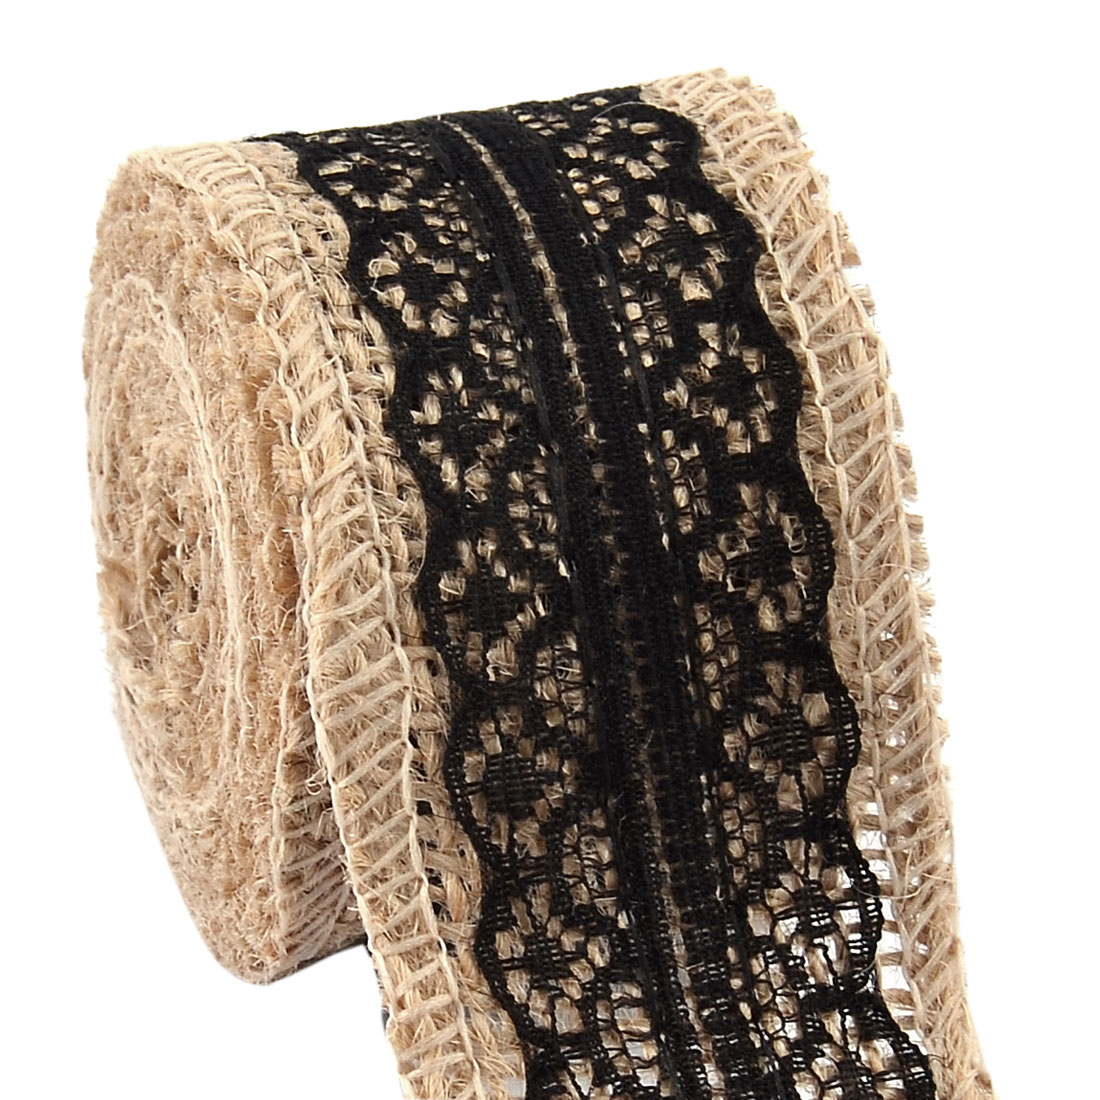 Burlap Belt Strap String Crafting Lace Ribbon Roll Black 2.2 Yards for Wedding Decor